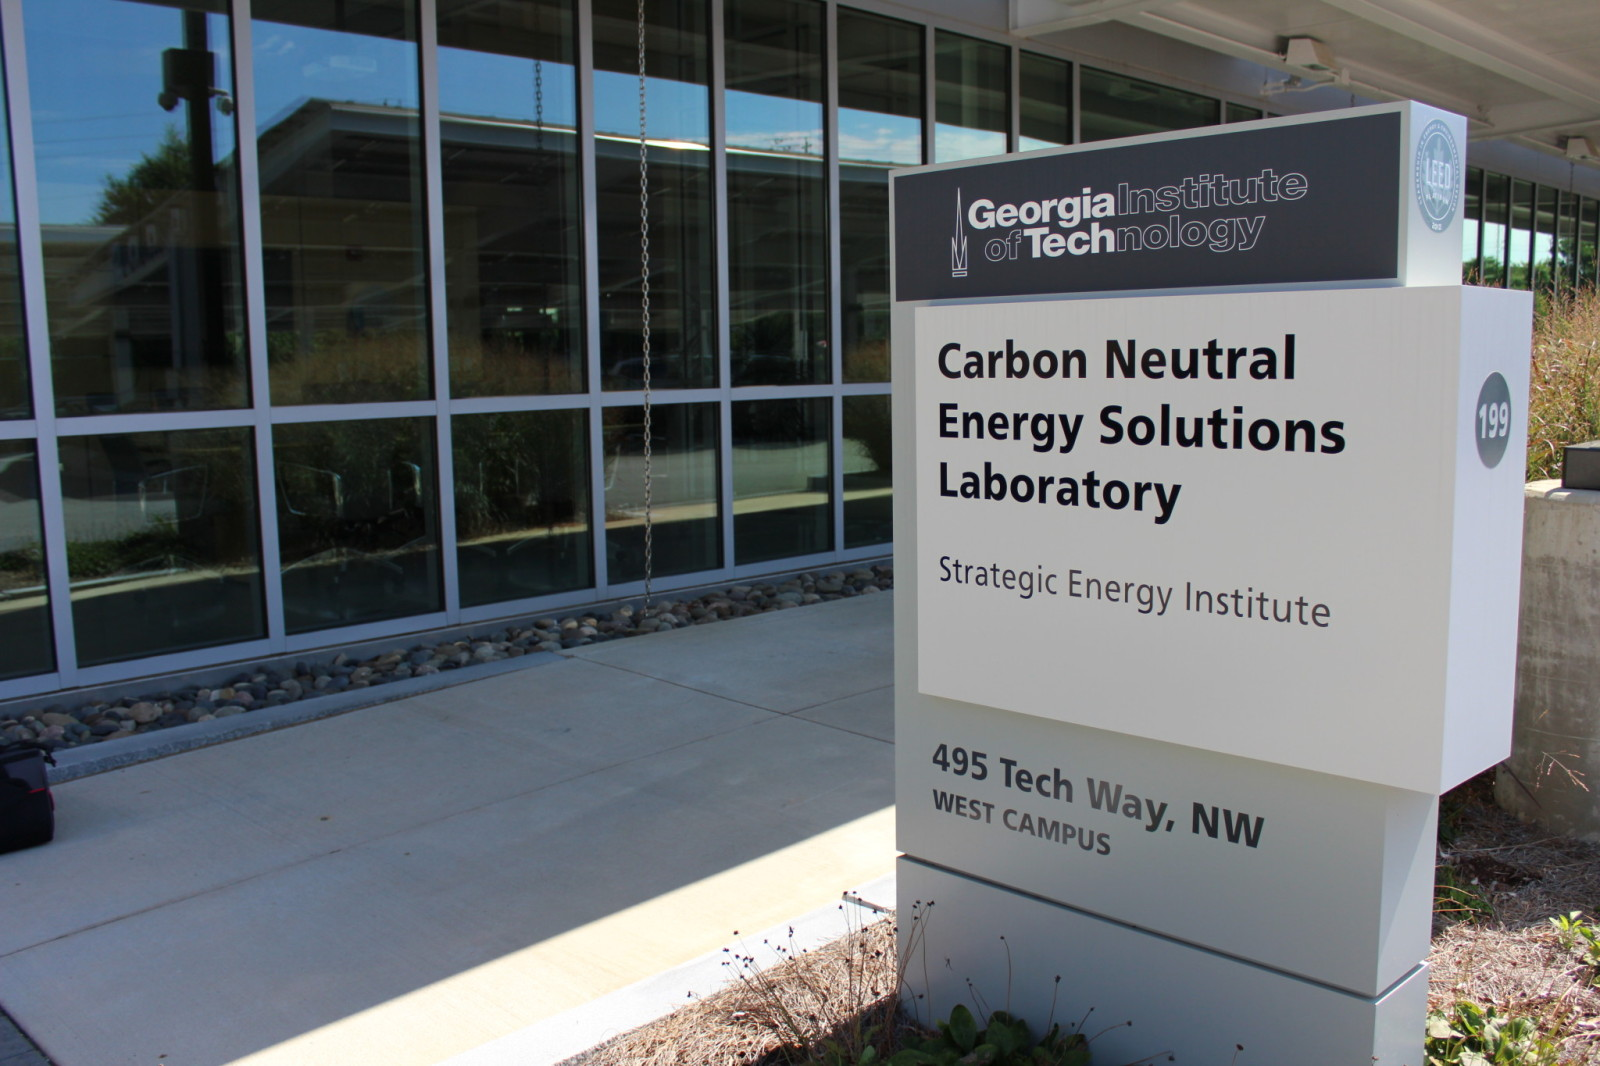 Georgia Tech Carbon Neutral Energy Solutions Laboratory: A Triatek Case Study